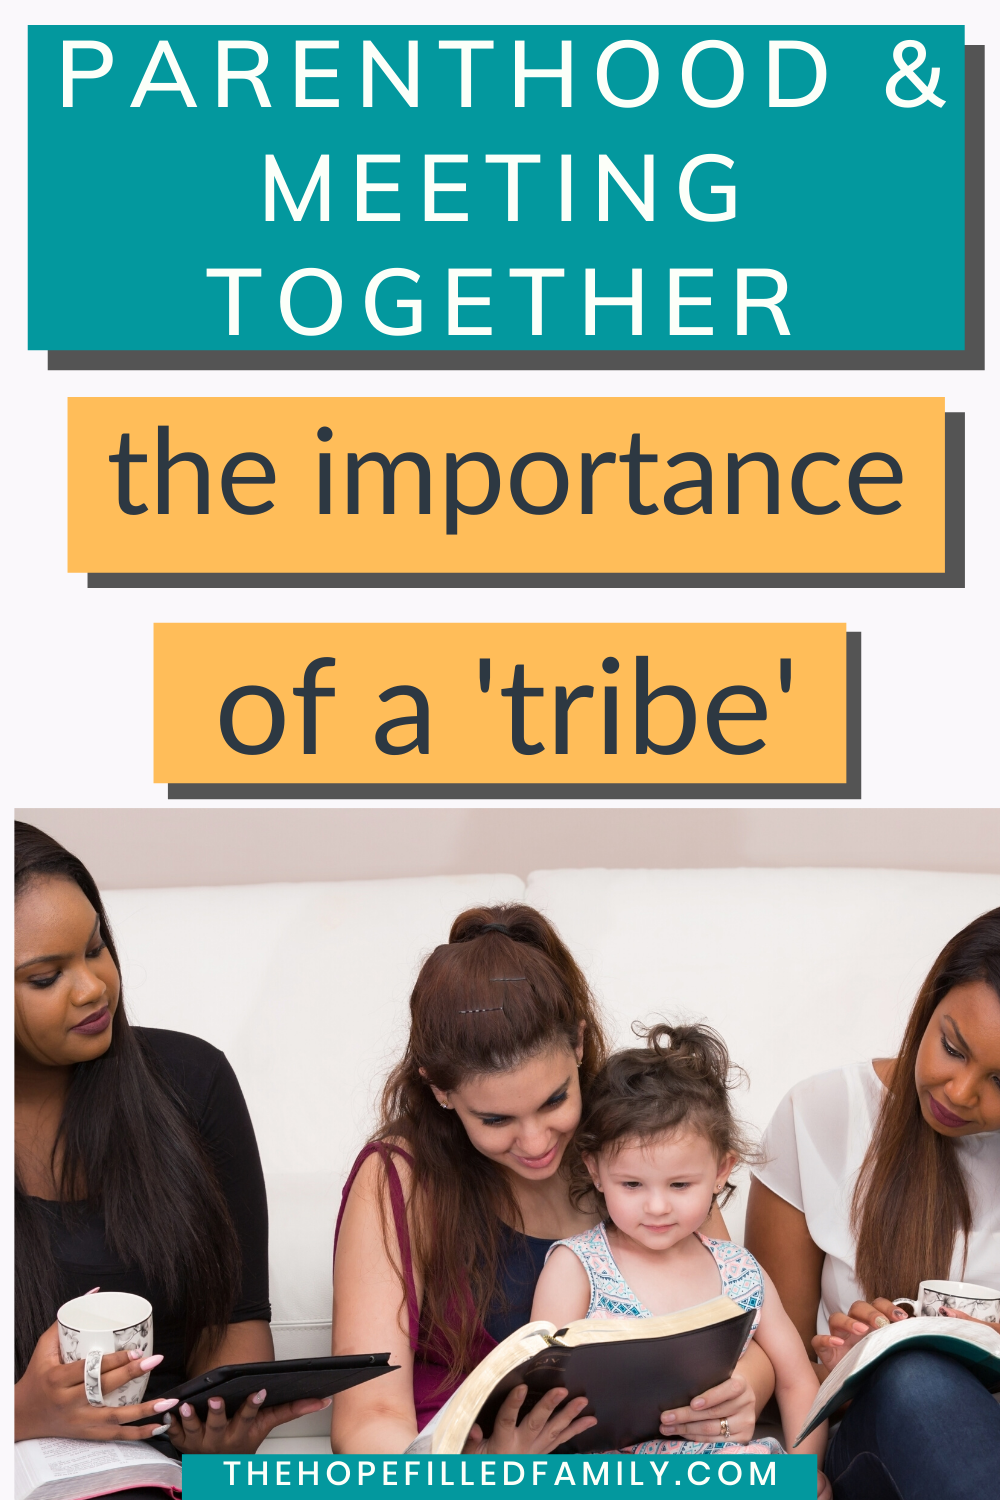 The importance of finding your 'tribe' as a Christian parent and some ideas for how to do it!